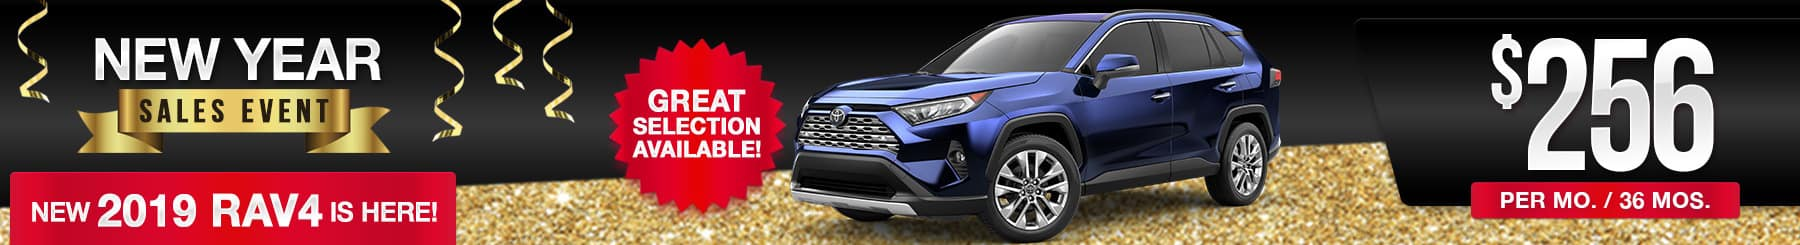 2019 RAV4 Lease Deal